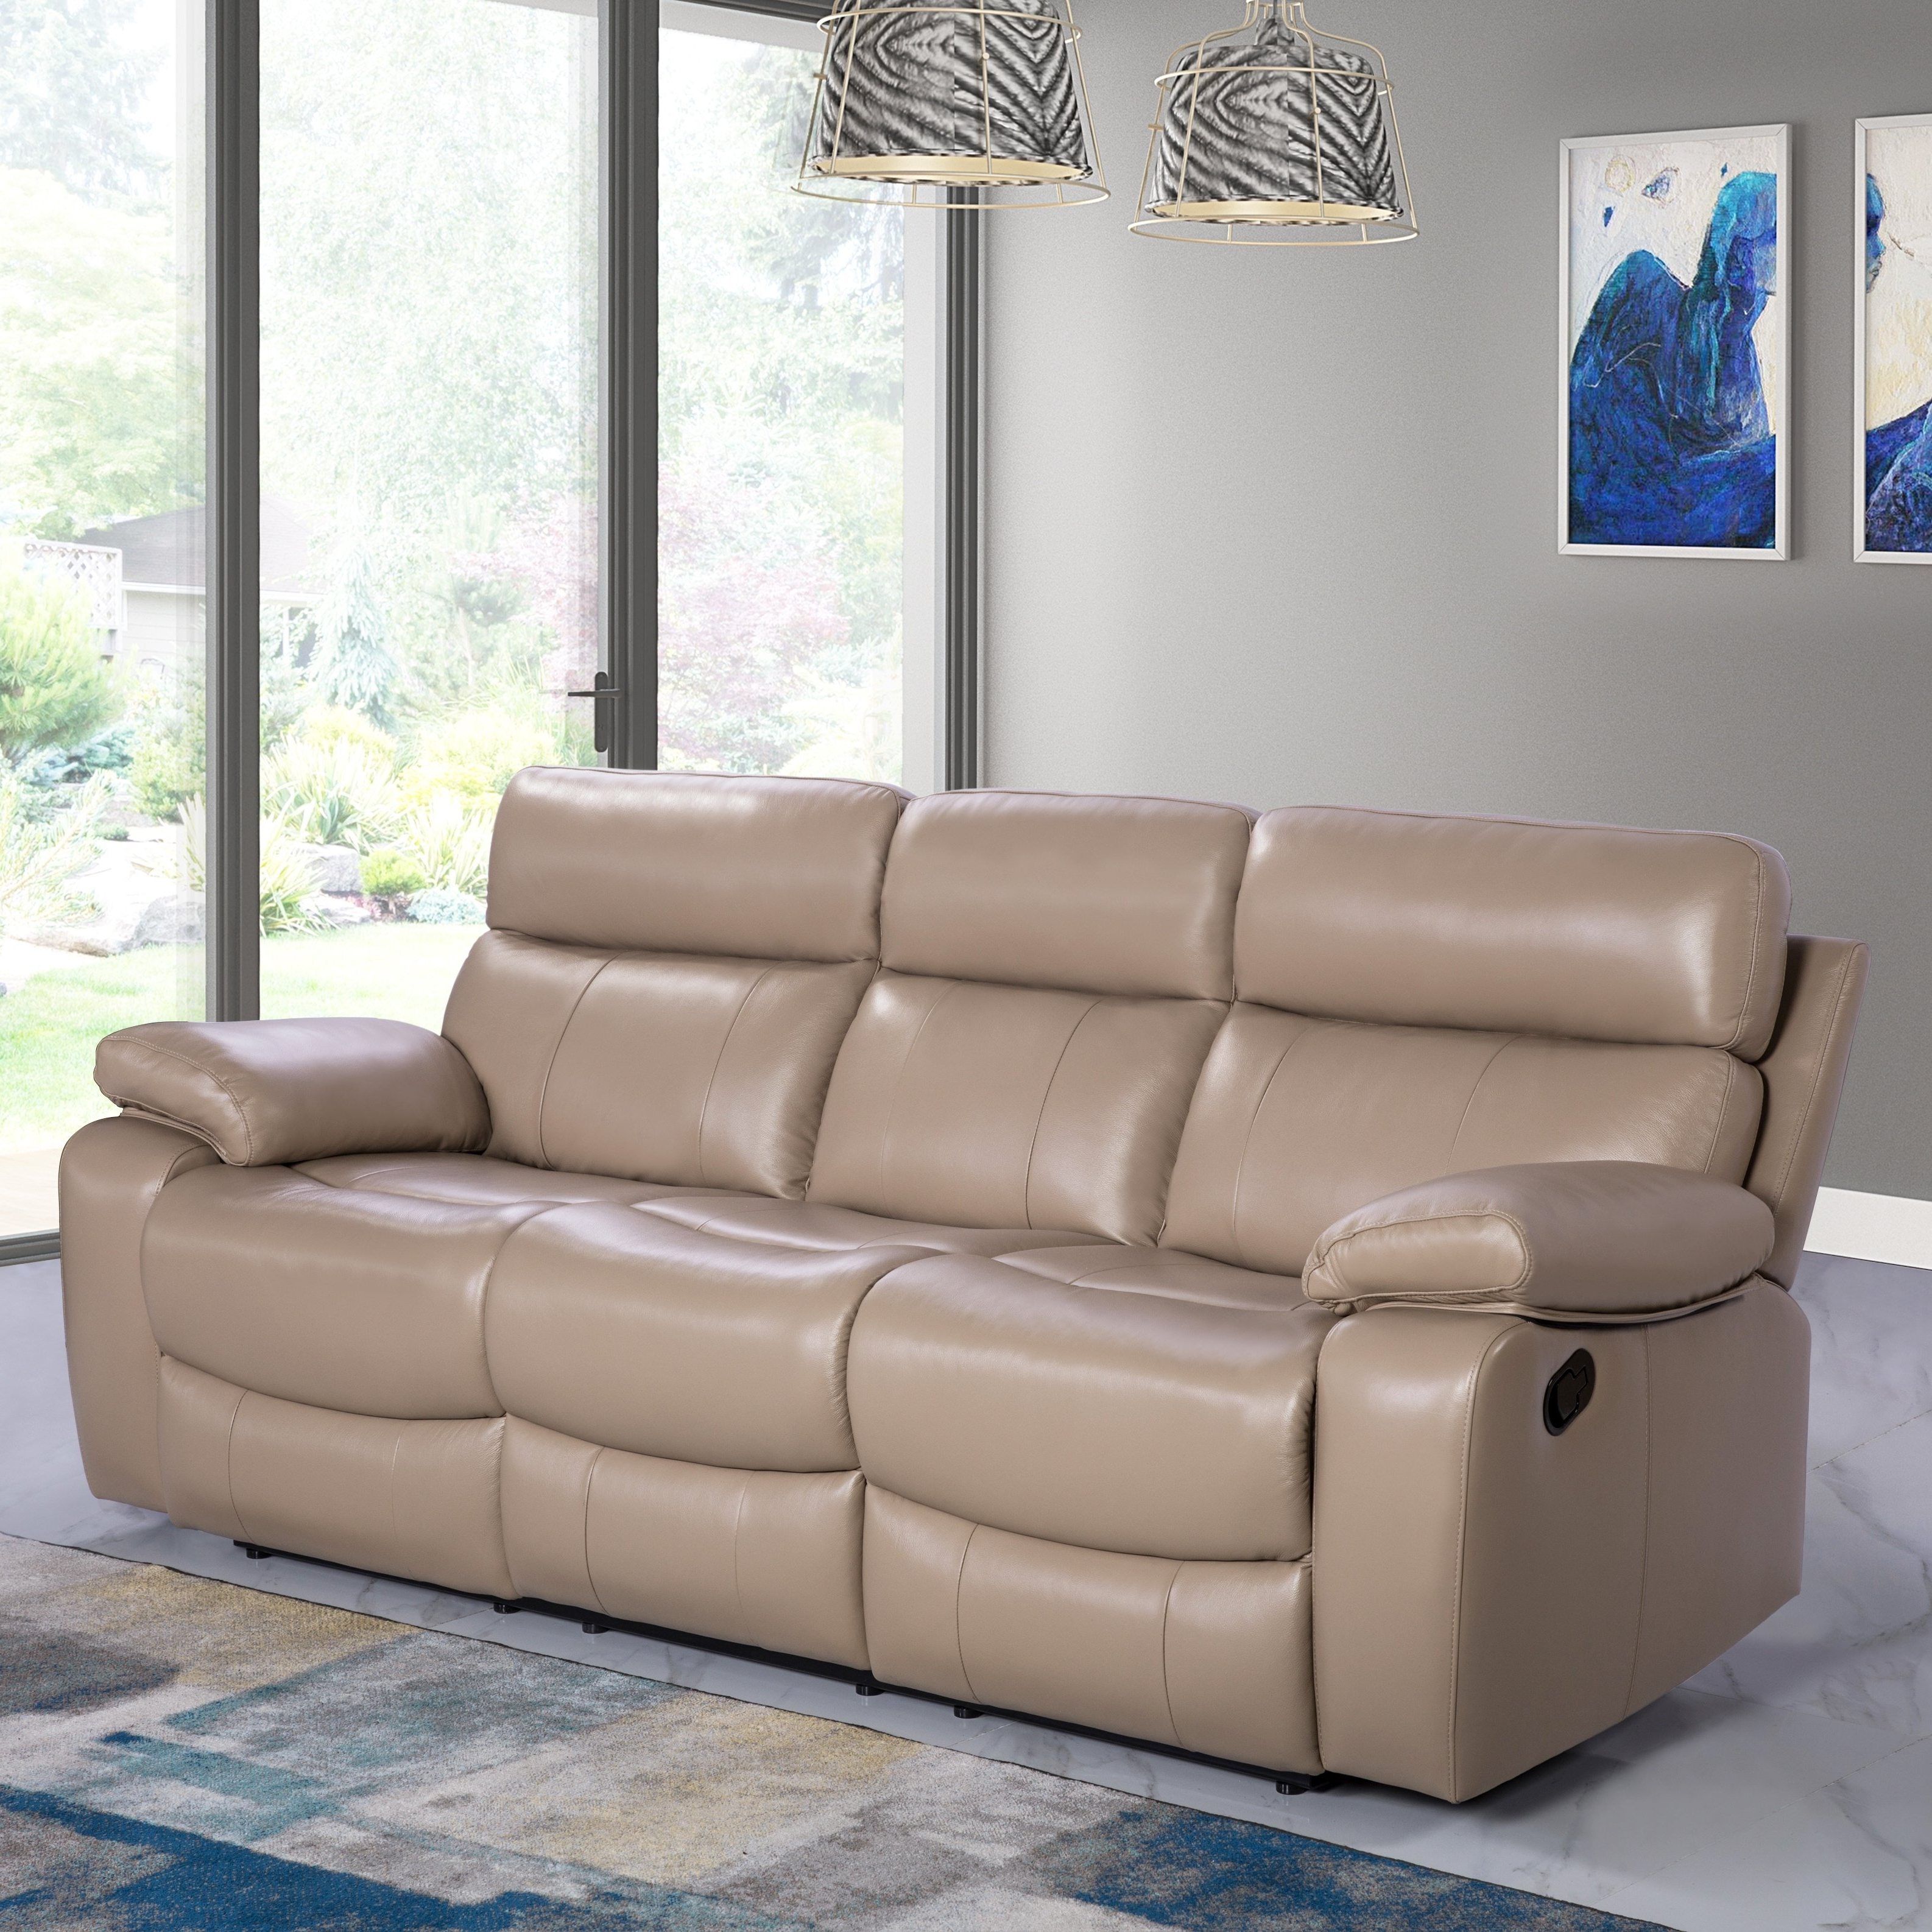 Beige Leather Reclining Sofa (View 4 of 20)